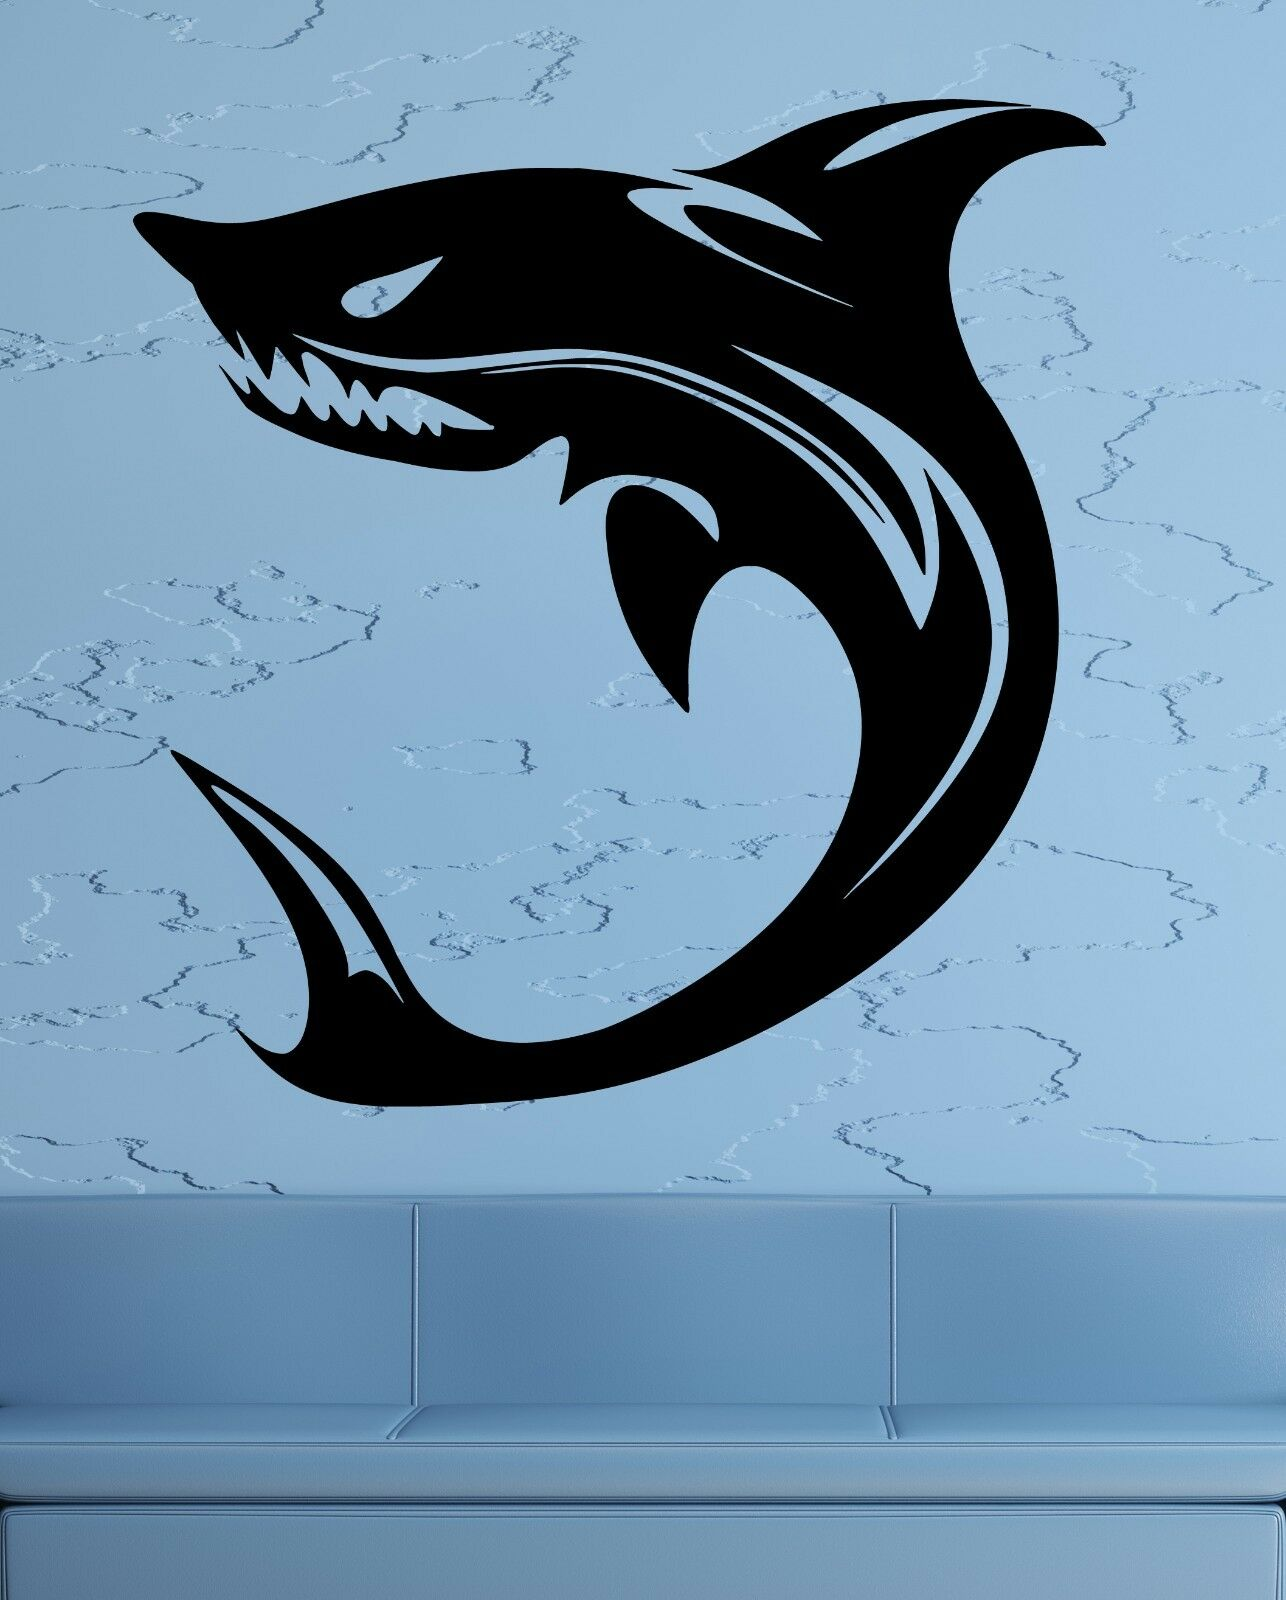 Wall decals stickers home decor home furniture diy wall stickers vinyl decal shark predator ocean sea marine tribal decor ig1834 amipublicfo Choice Image